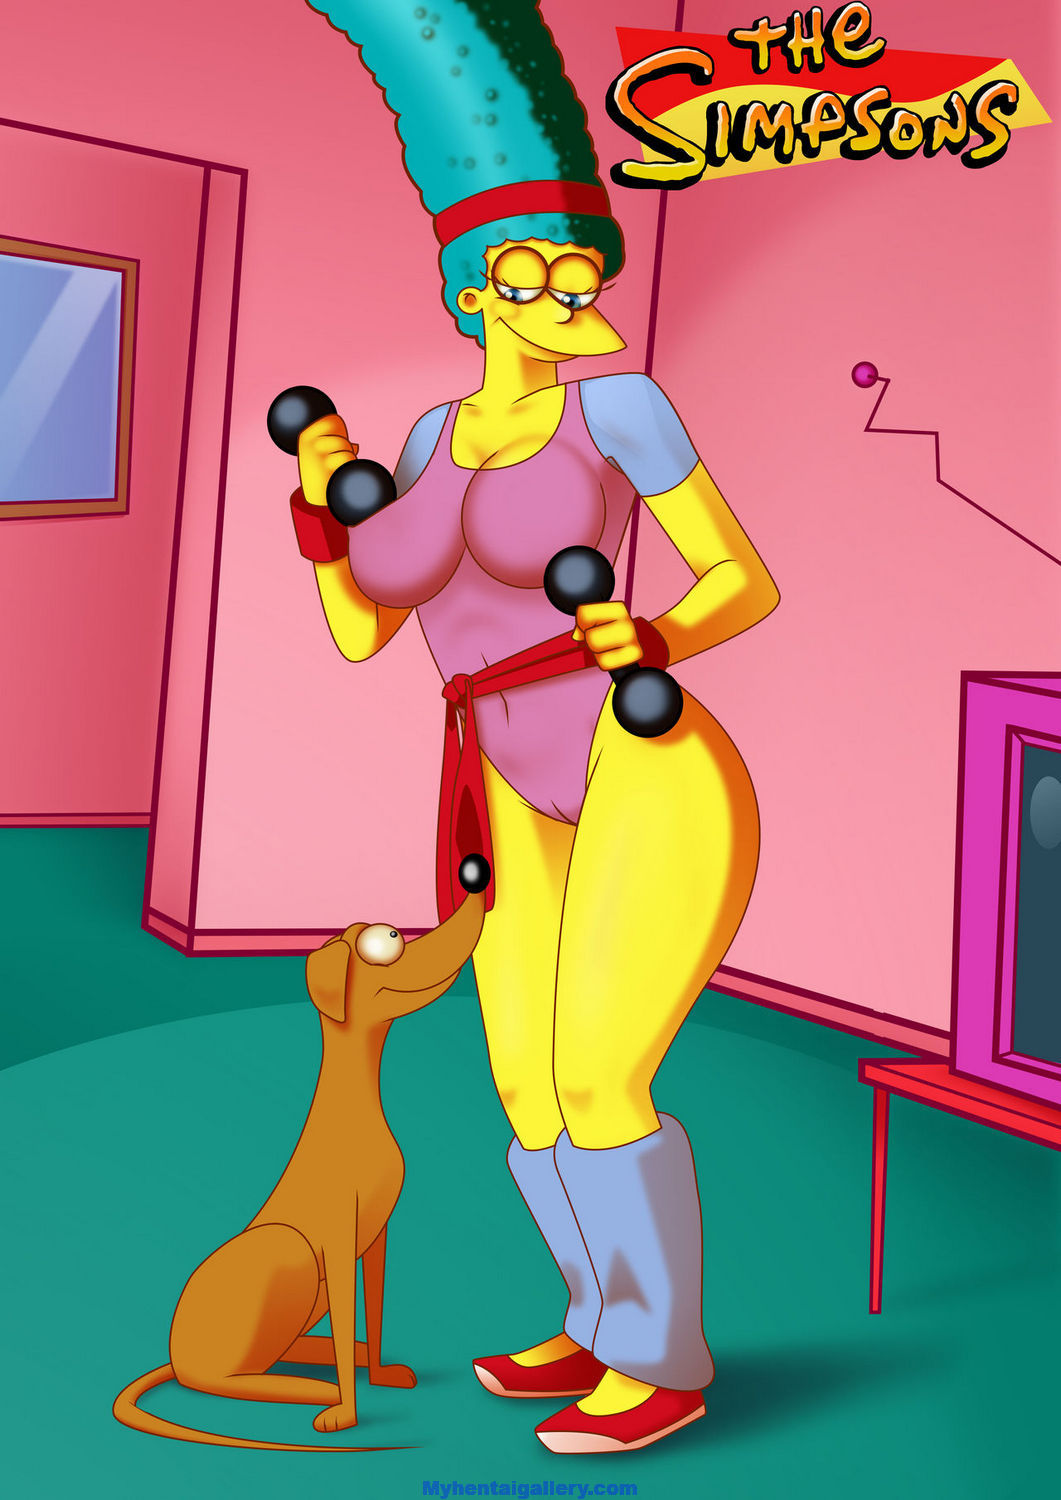 The Simpsons XXX - The Love Of Marge Simpson 2